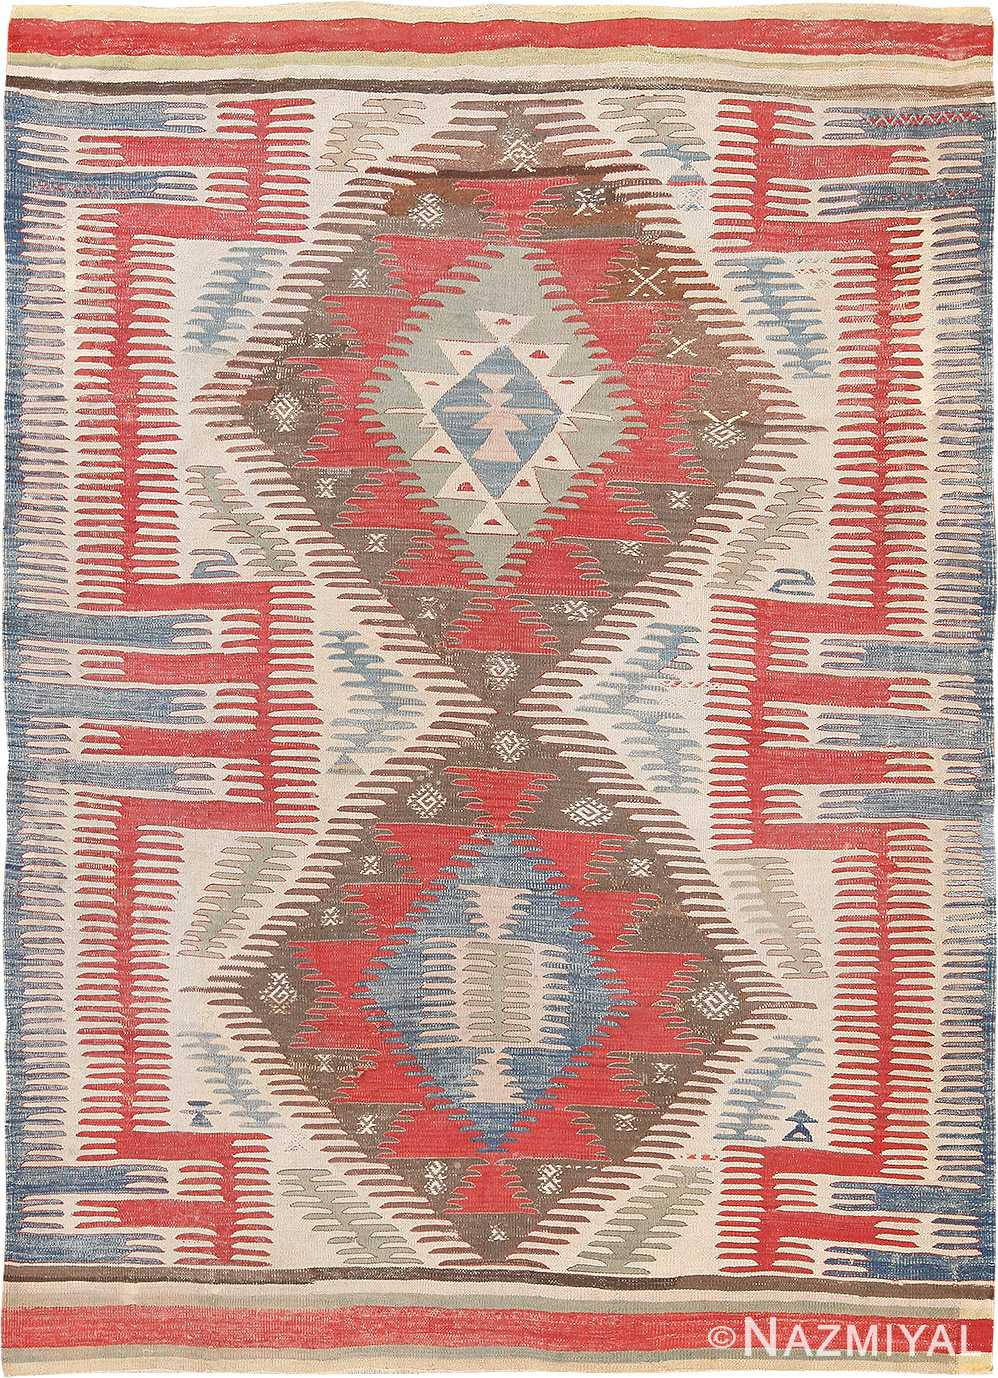 Tribal Antique Flat Weave Turkish Kilim #70009 from Nazmiyal Antique Rugs in NYC